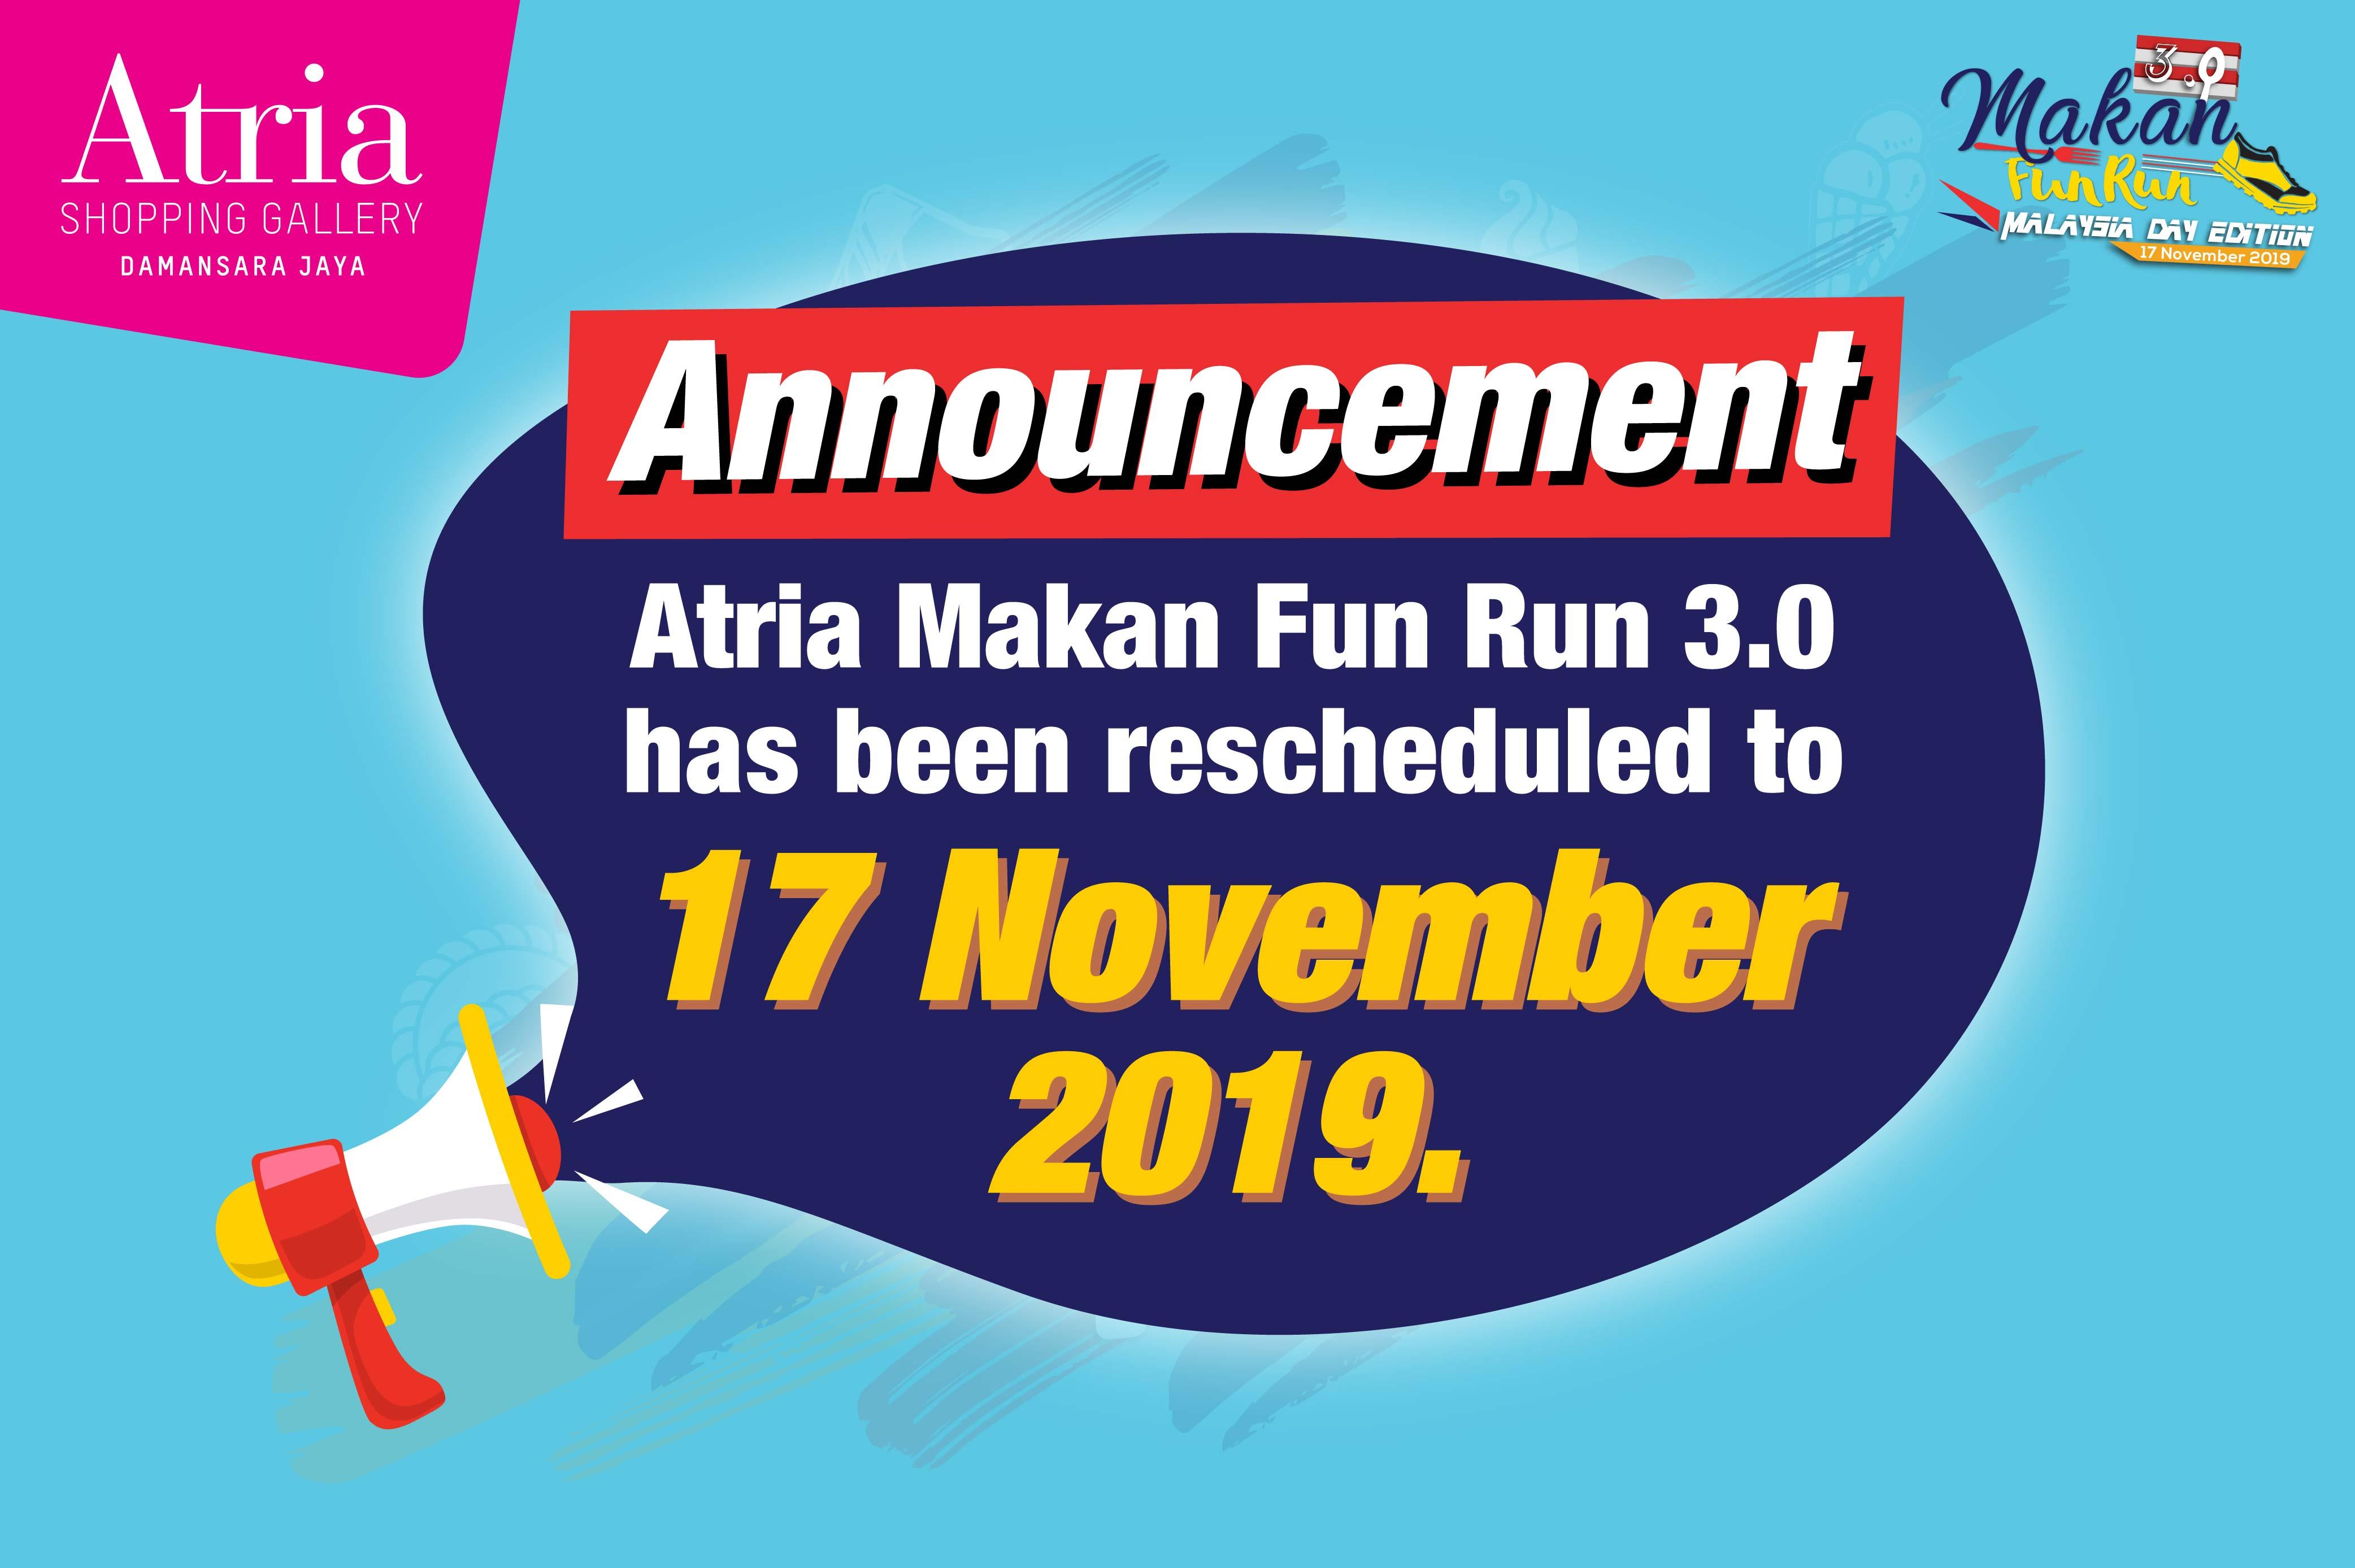 Atria Makan Fun Run 3.0 - Malaysia Day Edition